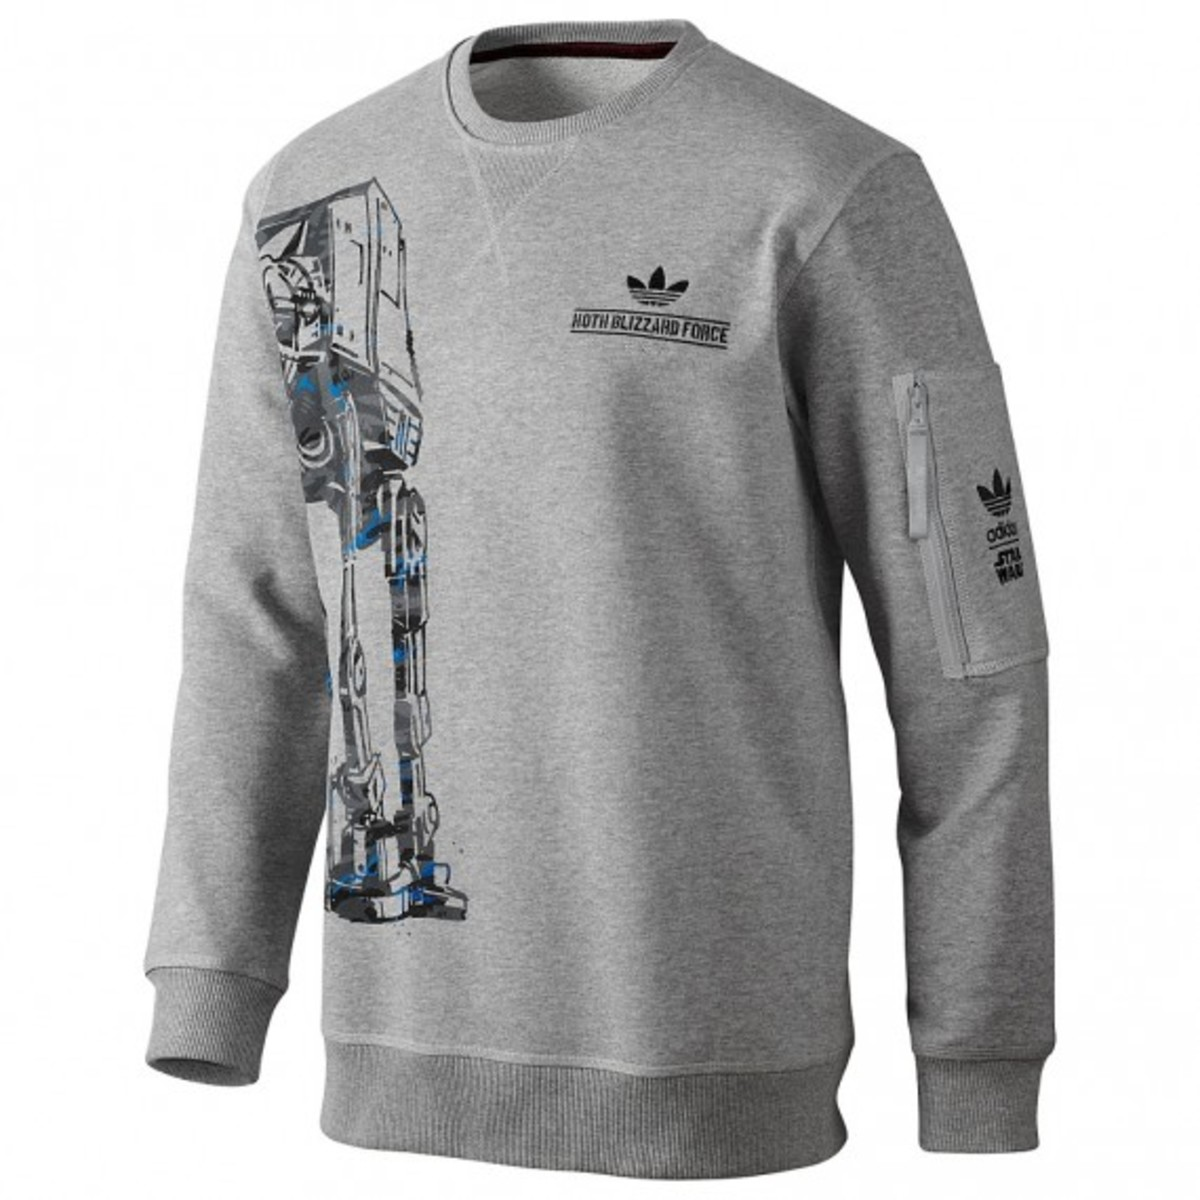 star-wars-adidas-originals-hoth-collection-apparel-available-now-09